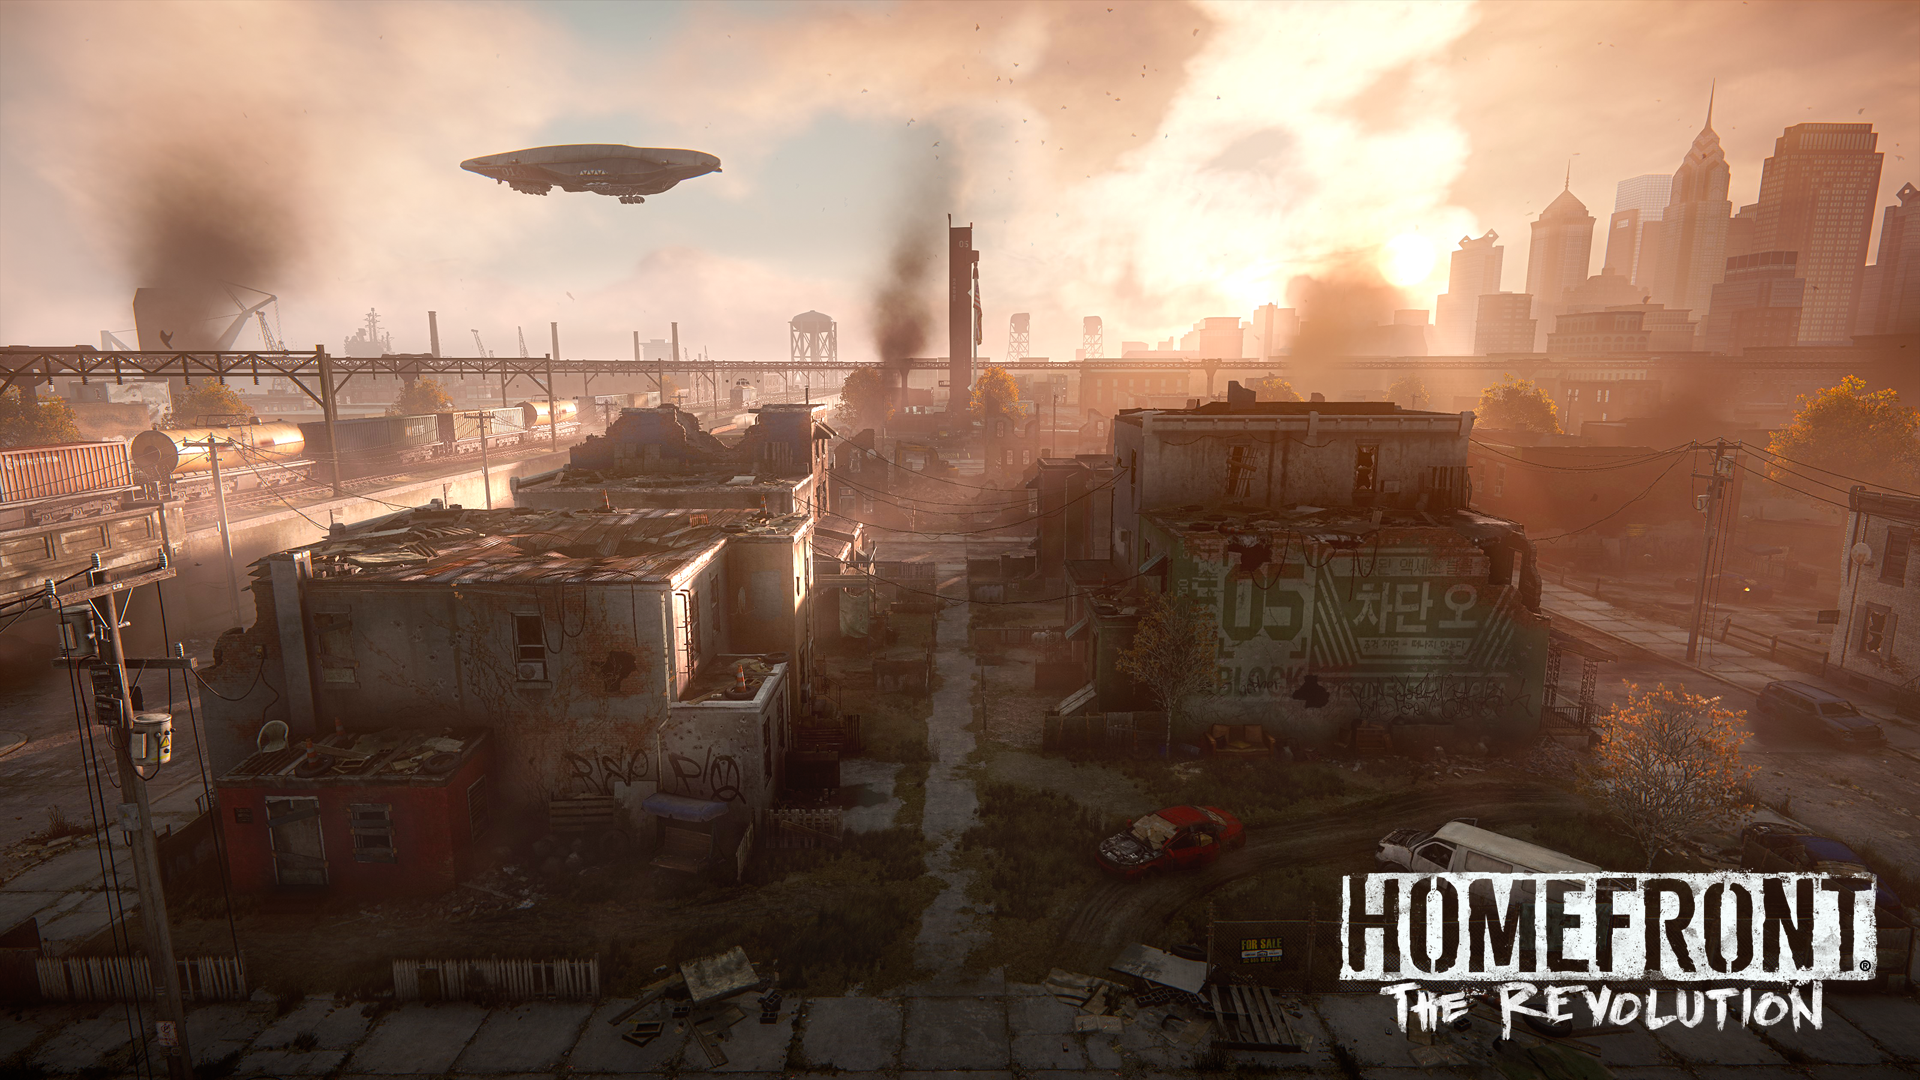 . Hdpng.com Gallery Image 5 Hdpng.com  - Homefront Video Game, Transparent background PNG HD thumbnail